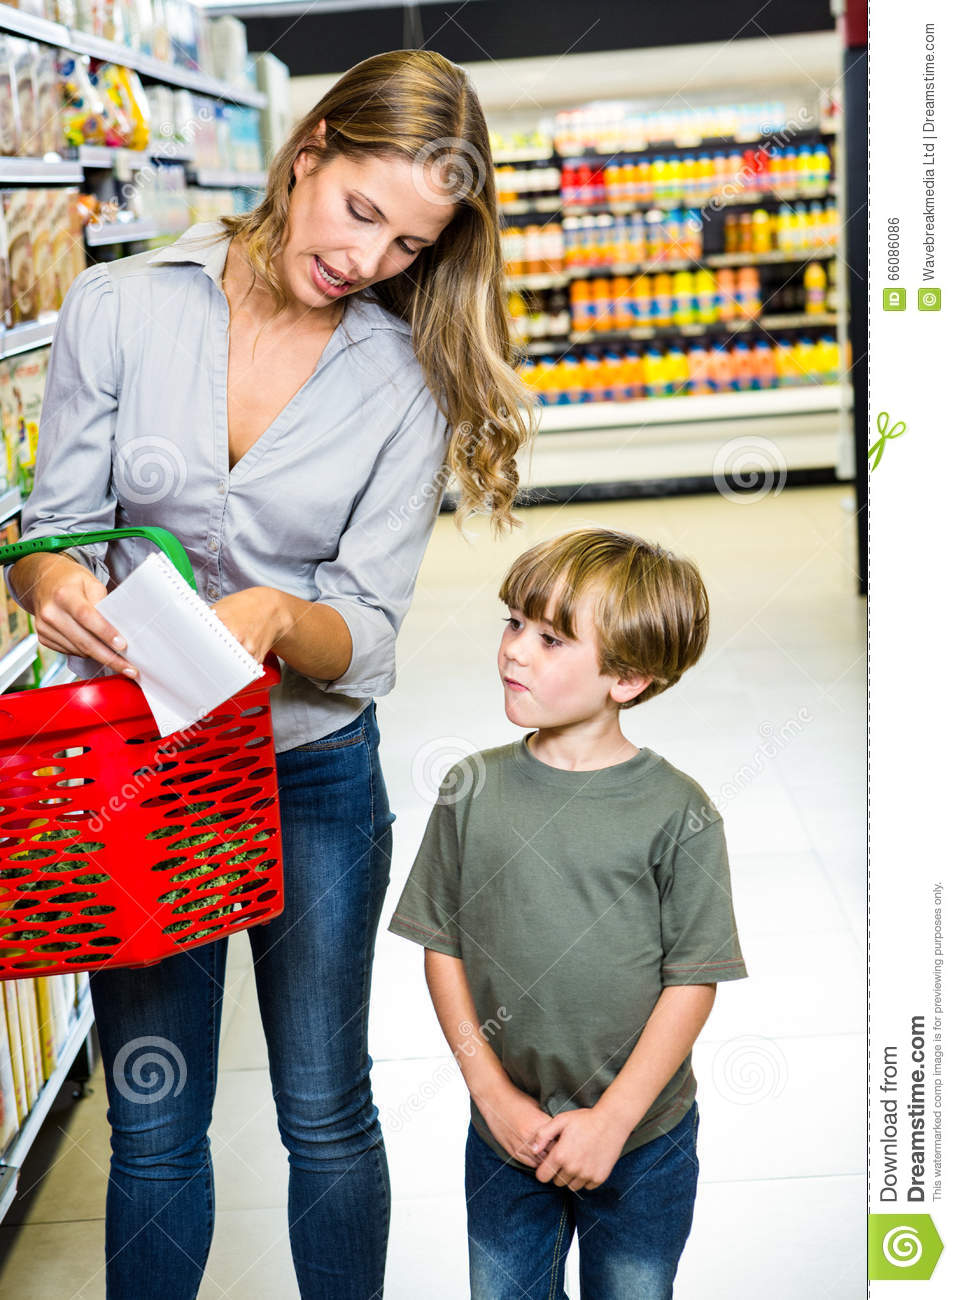 mother and son reading shopping list stock photo image of female